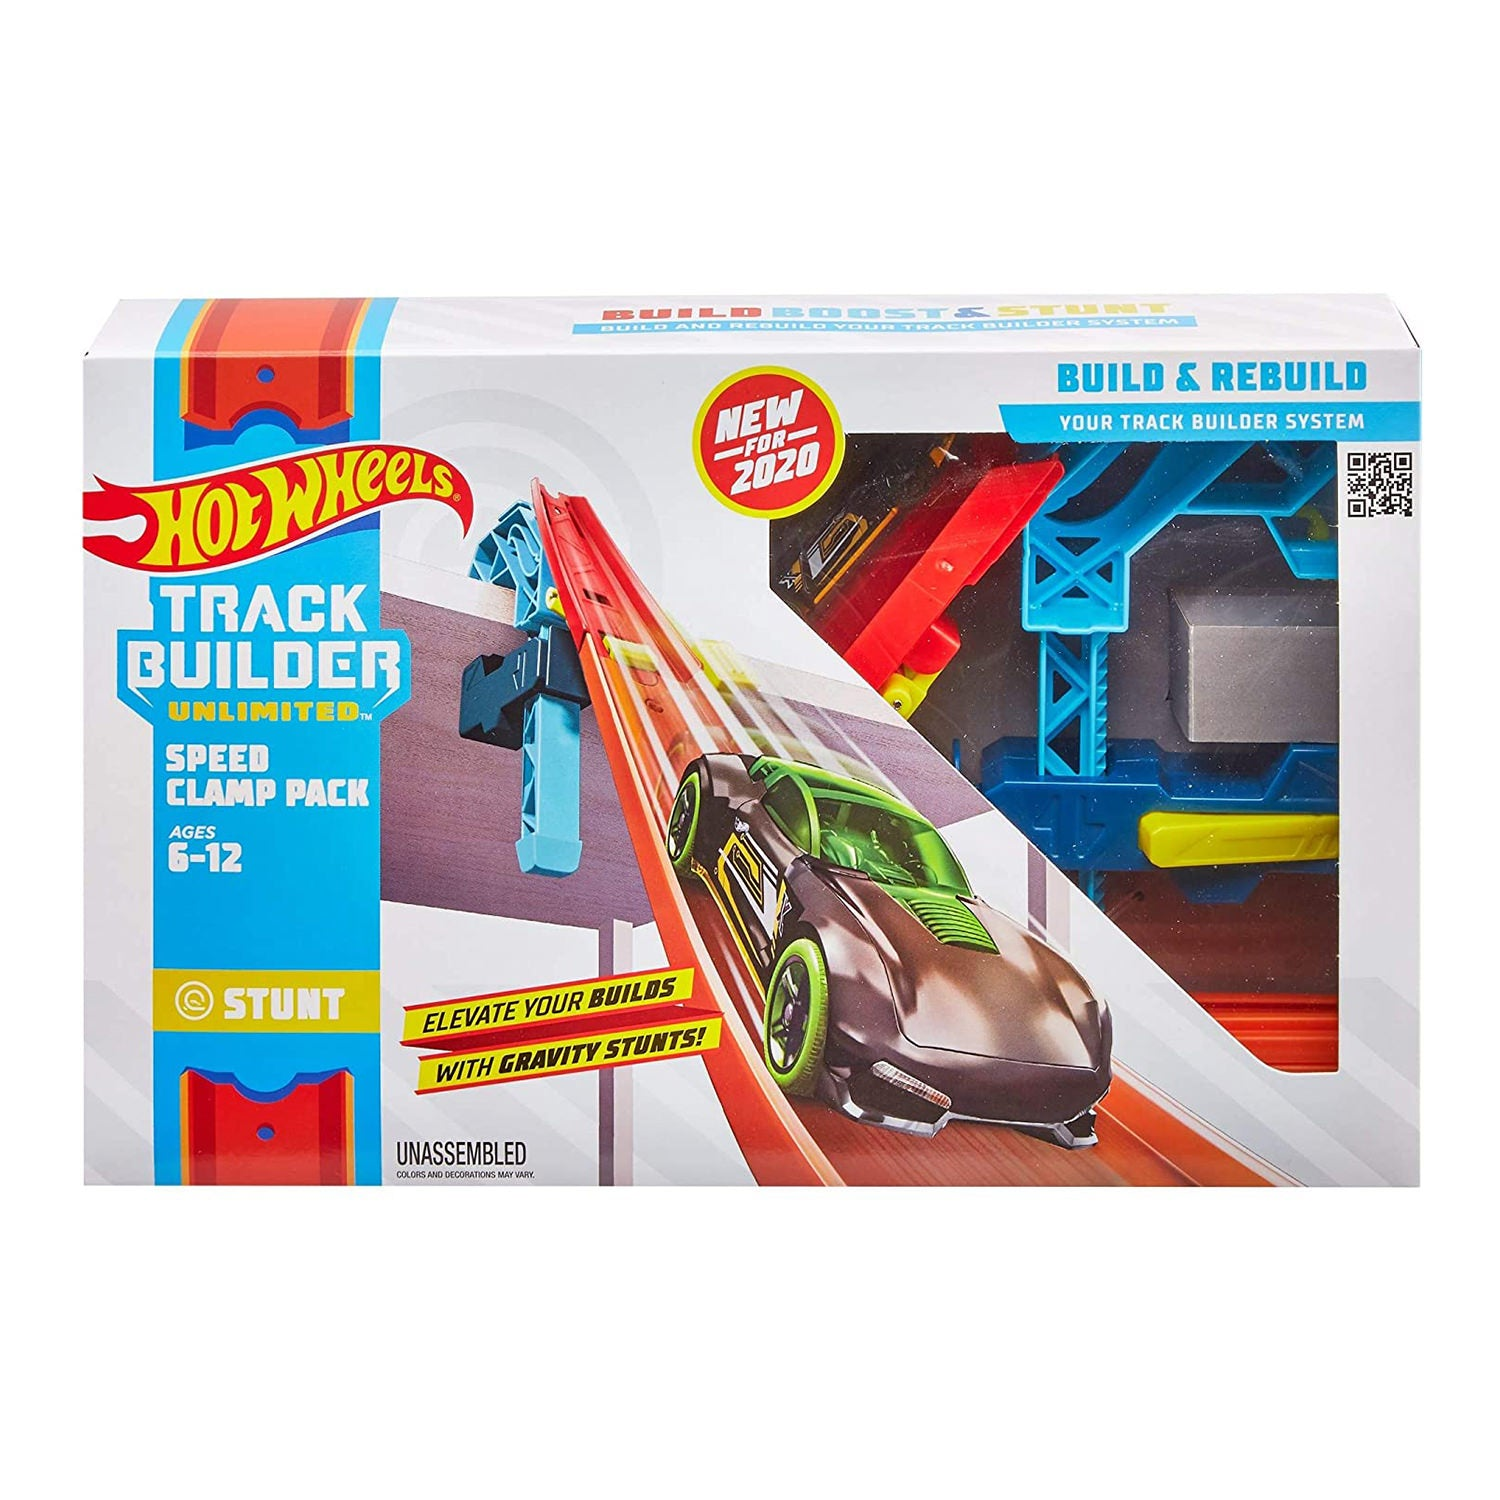 HOT WHEELS TRACK BUILDER COMPONENT